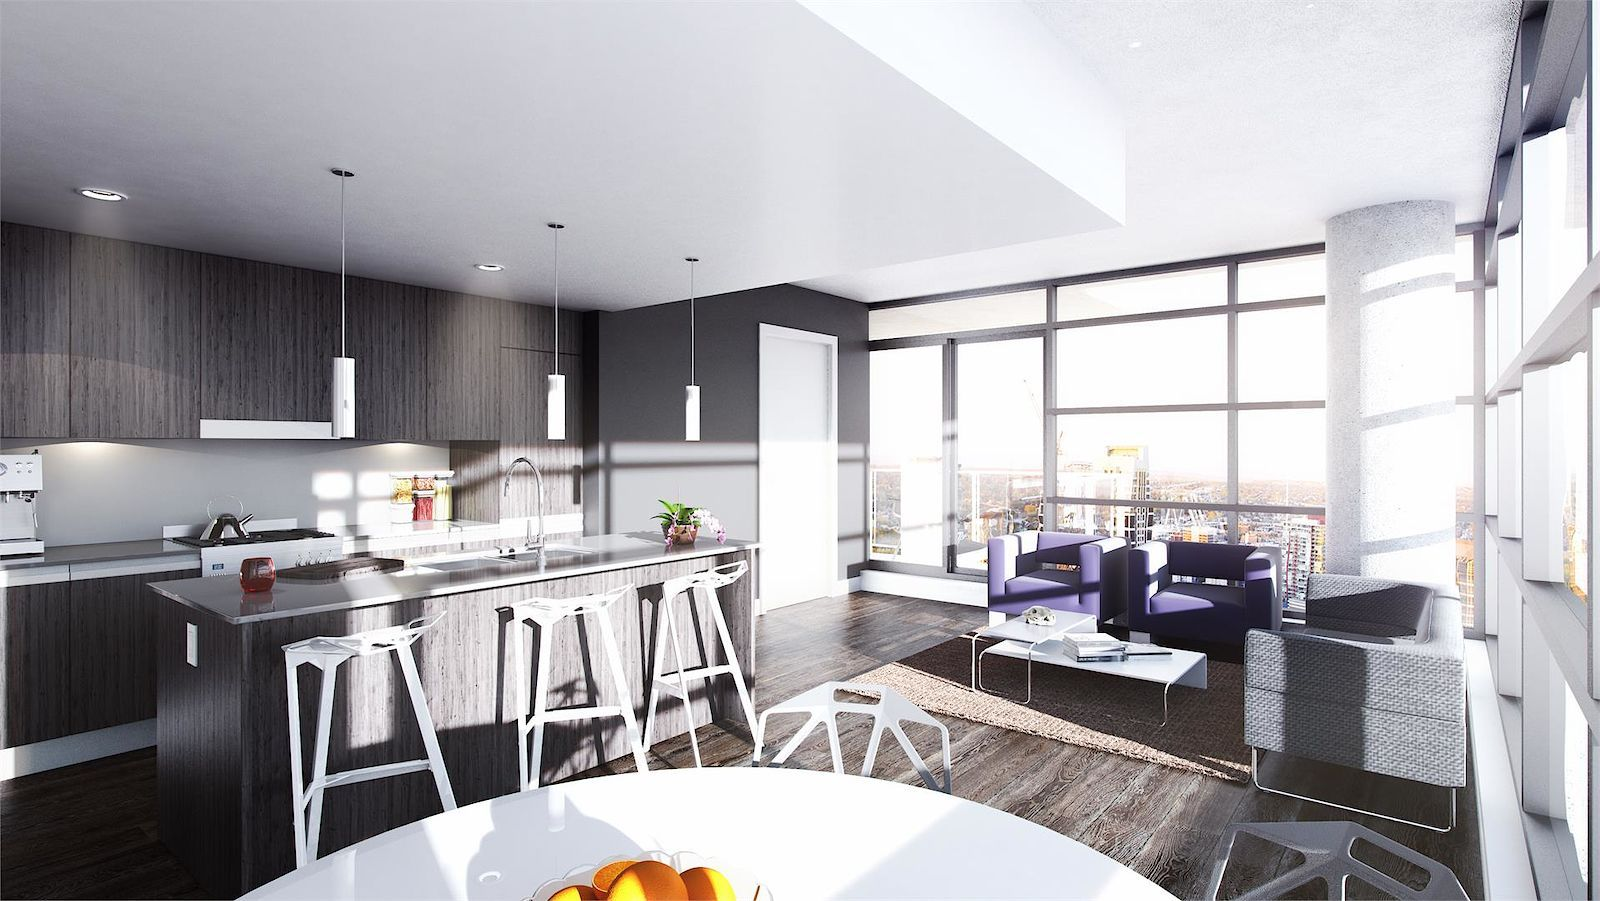 Calgary Condo For Rent Victoria Park Inner City The Guardian 1 Or Id 125178 Rentfaster Ca Condos For Rent Condo Home